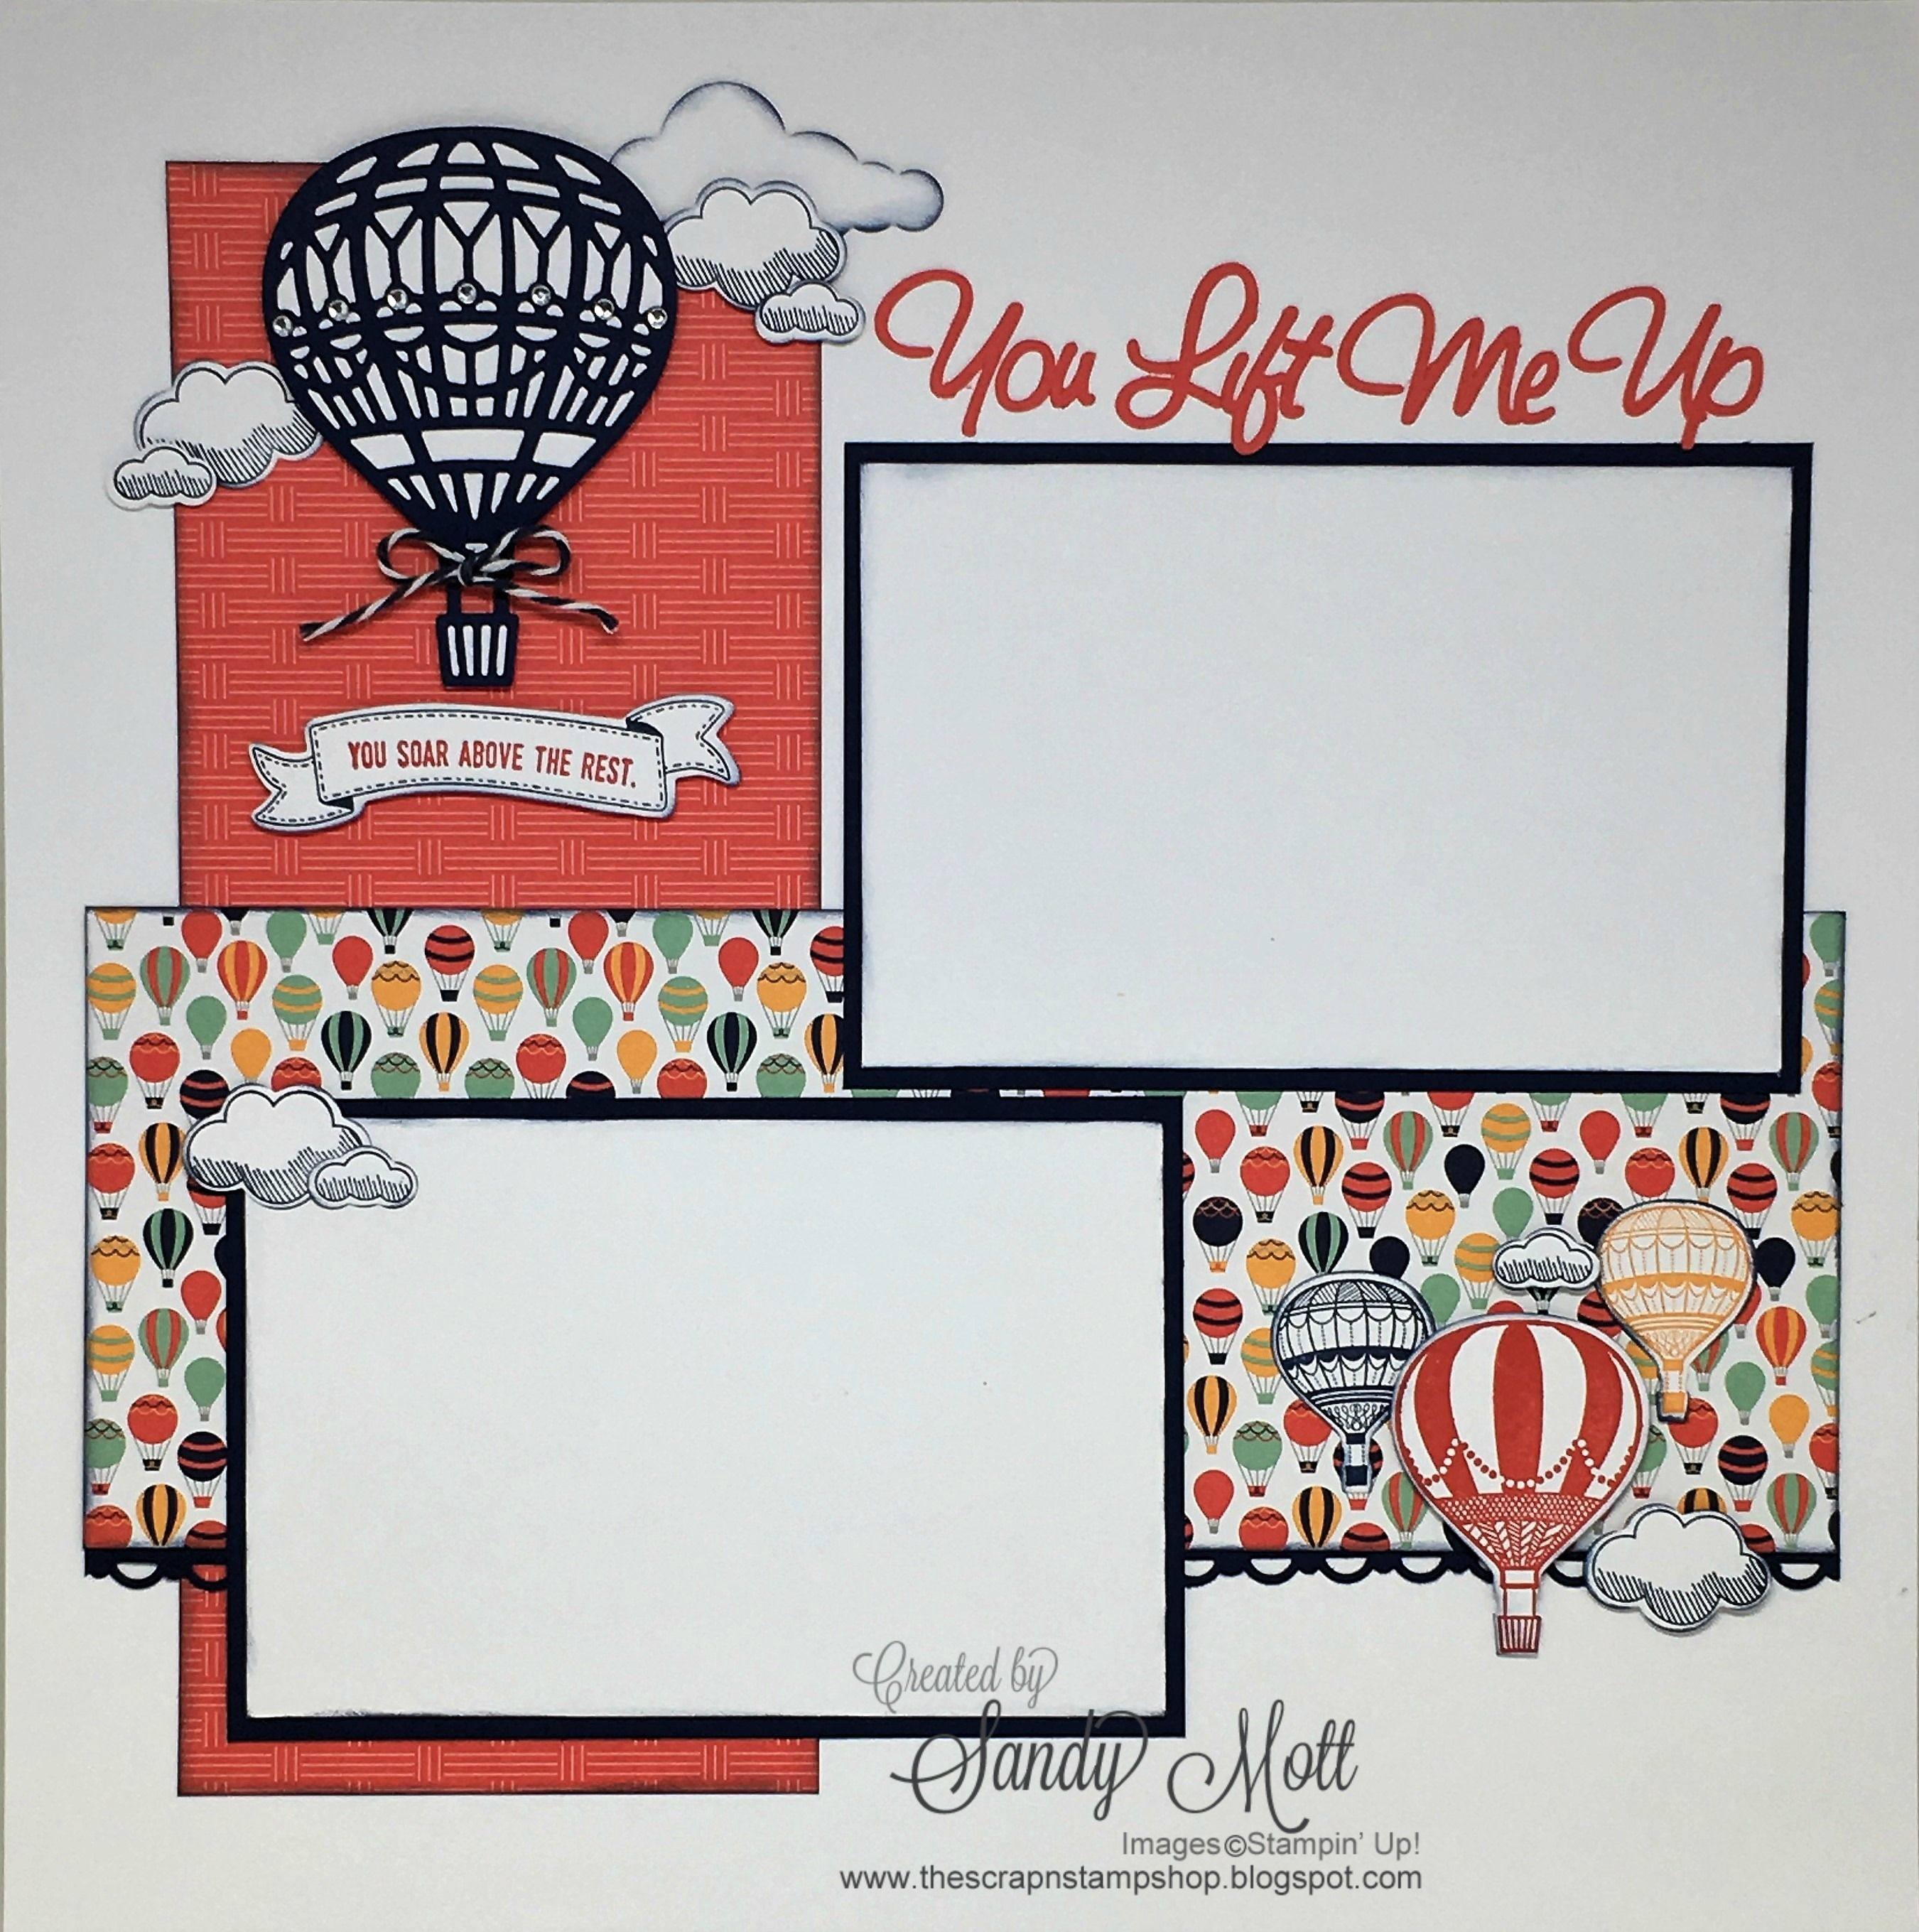 Lift me up bundle stampin 39 up scrapbook page created by sandy mott scrapbooking layouts - Scrapbooking idees pages ...